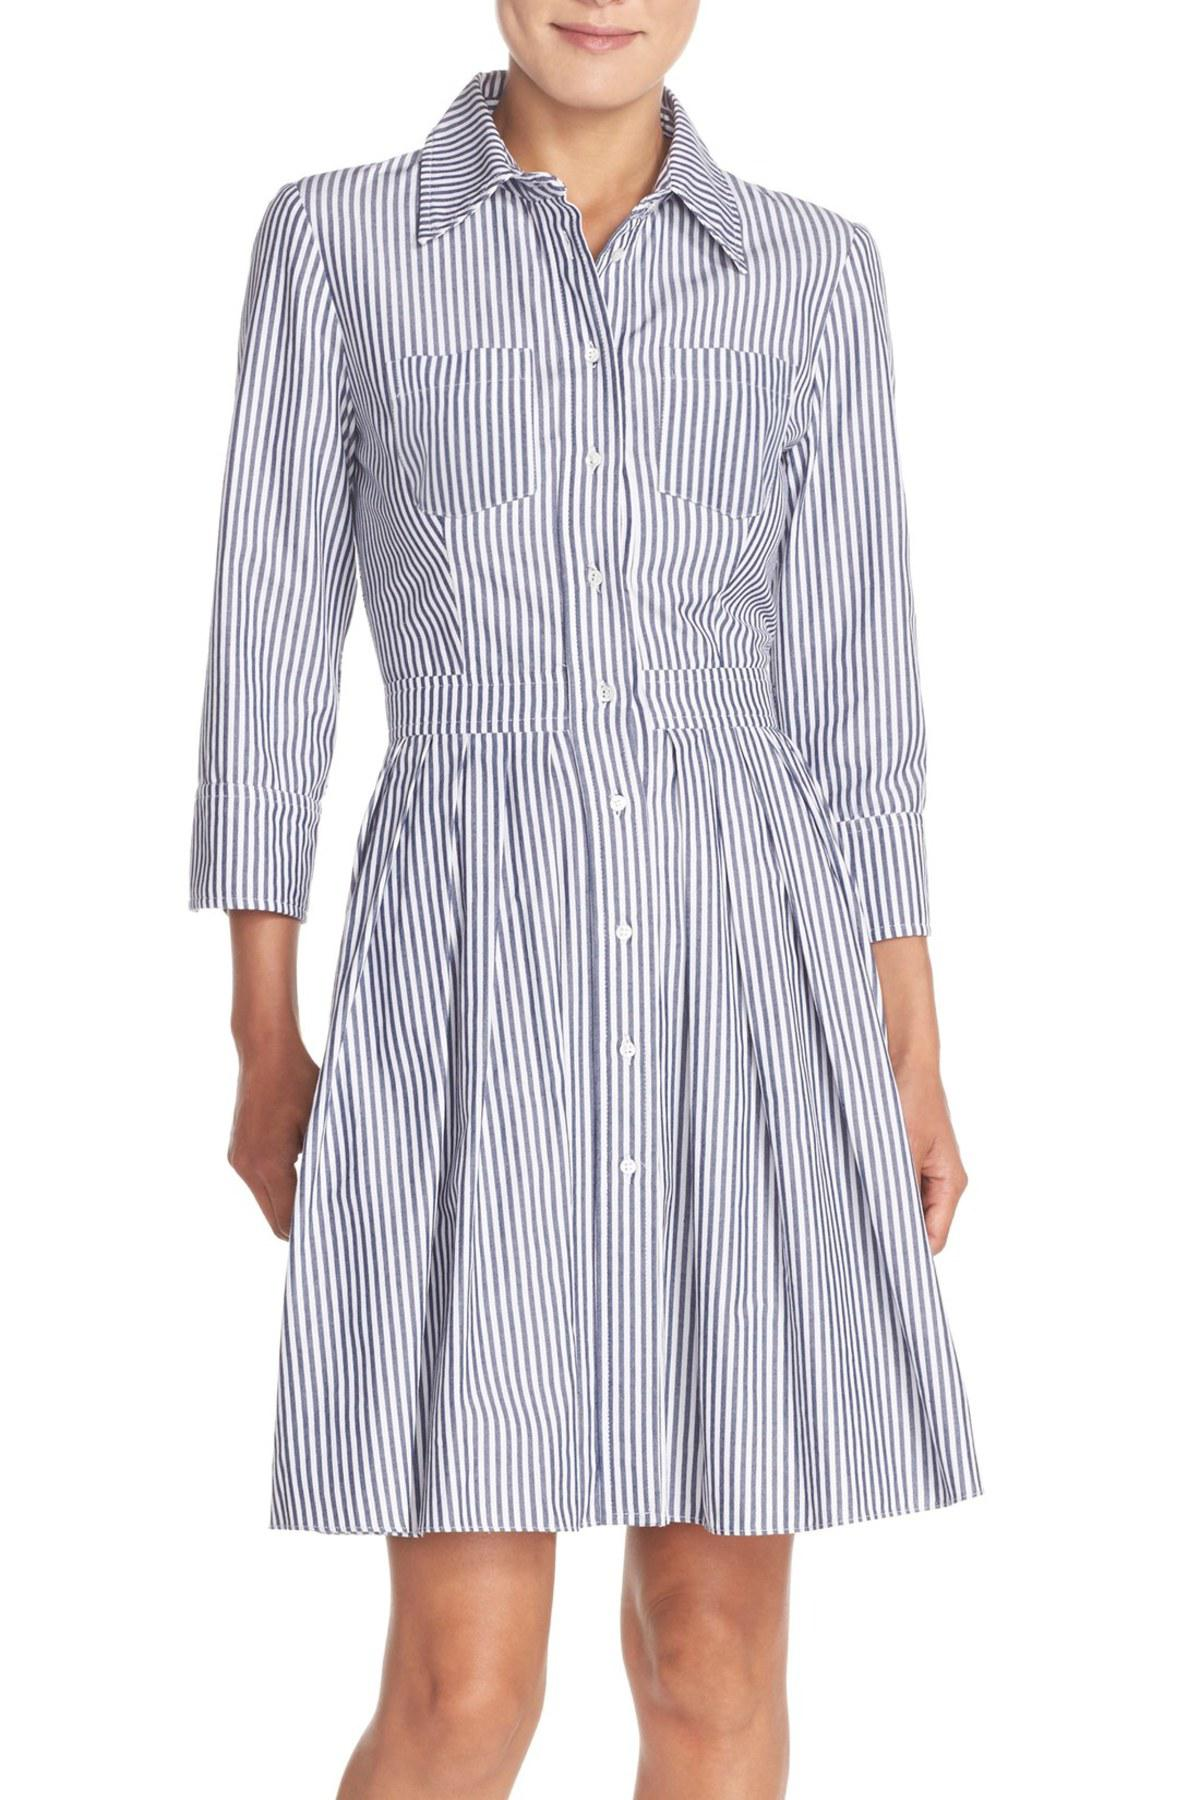 Lyst Eliza J Stripe Cotton Shirtdress In Blue